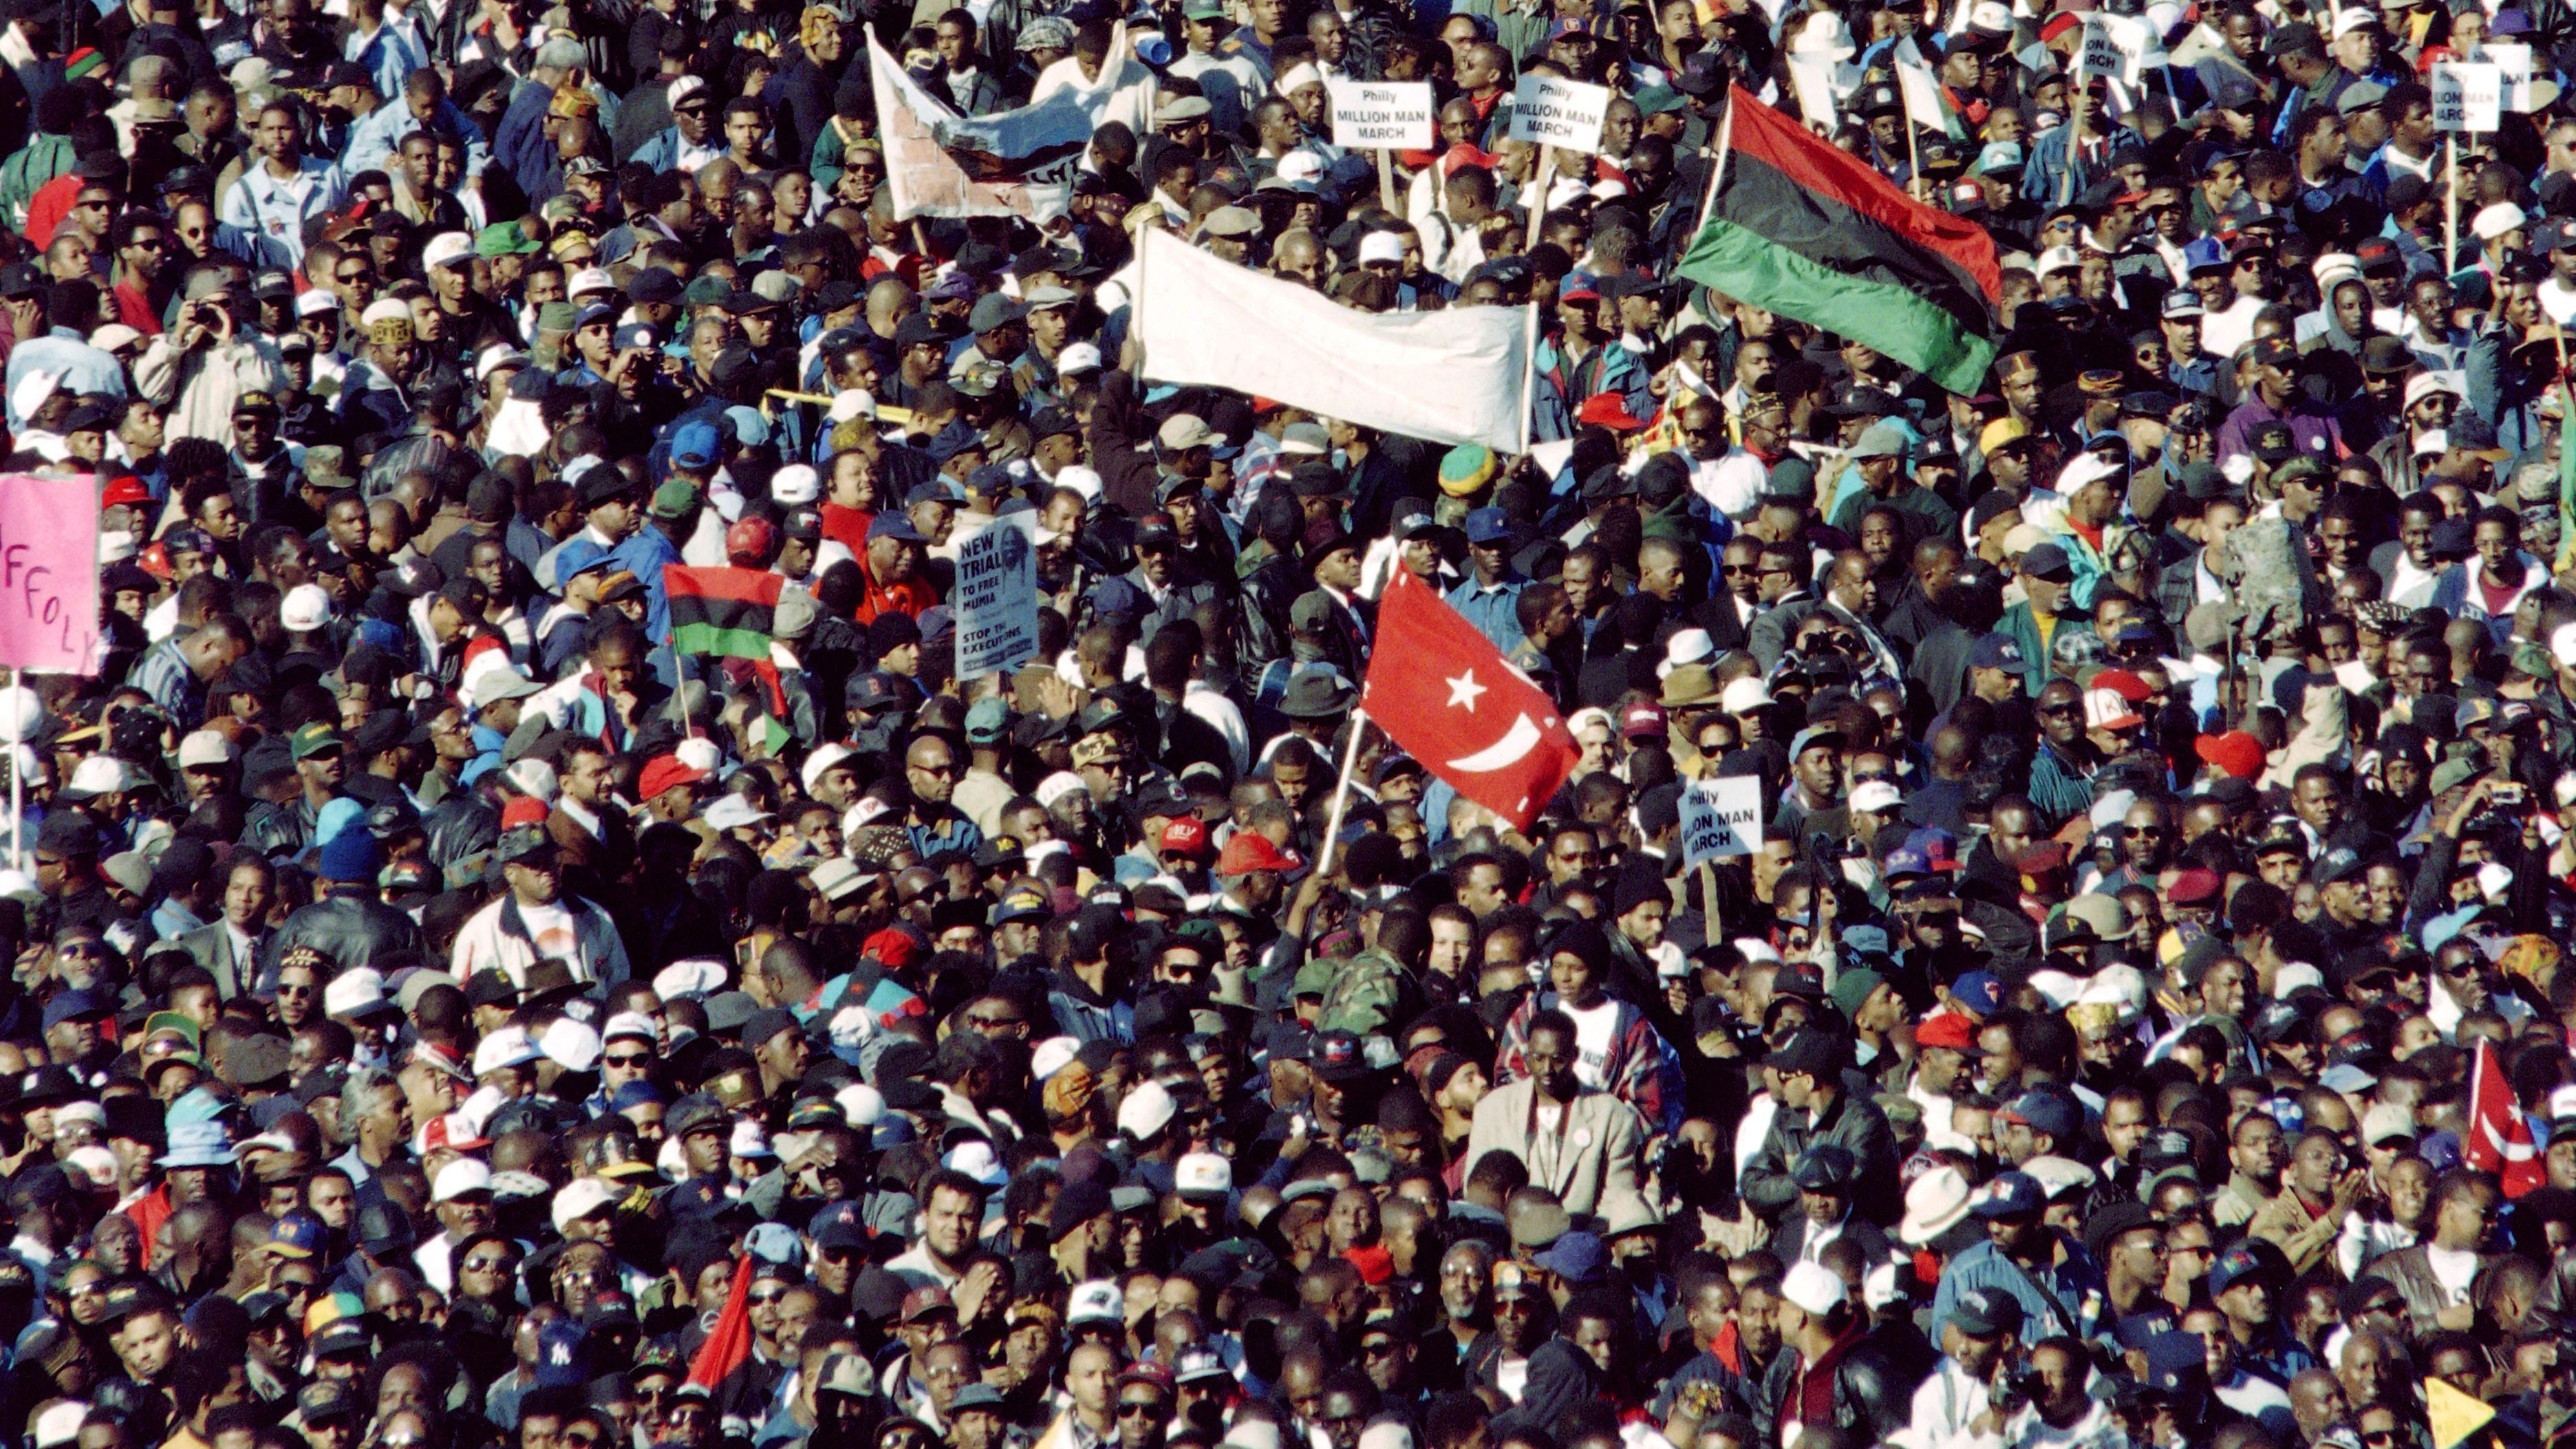 Tens of thousands of people gathered on the National Mall, seen here from the U.S. Capitol Building, for the Million Man March on Oct. 16, 1995. The march, called by Nation of Islam leader Louis Farrakhan, was intended as a day for Black men to unite and pledge self-reliance and commitment to their families and communities.